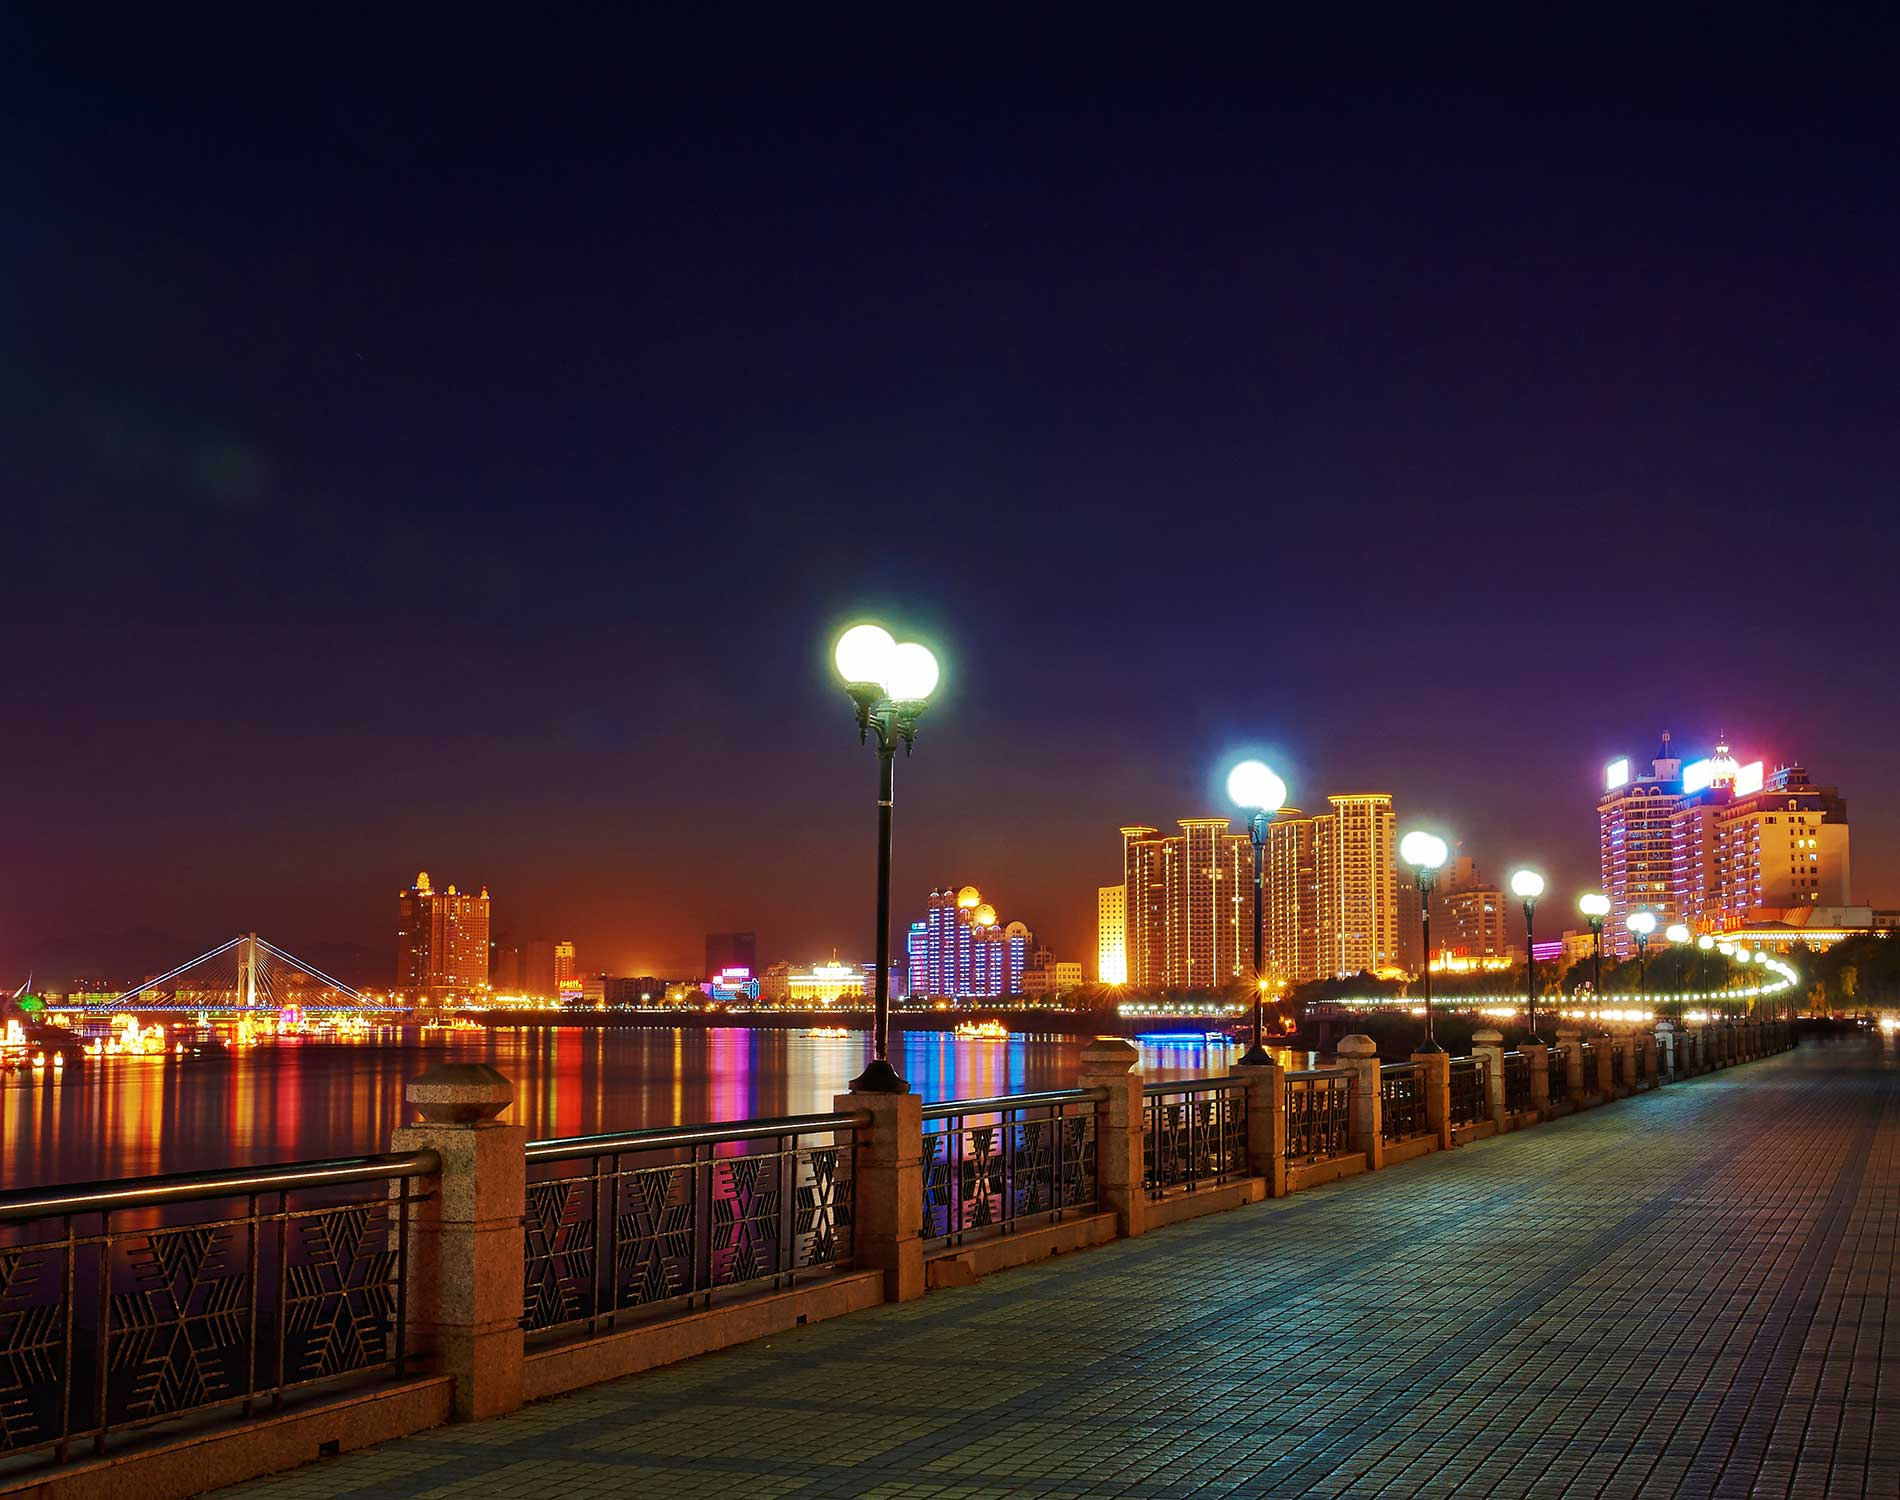 /-/media/images/website/background-images/offices/jilin/jilin_city_1900x1500px.ashx